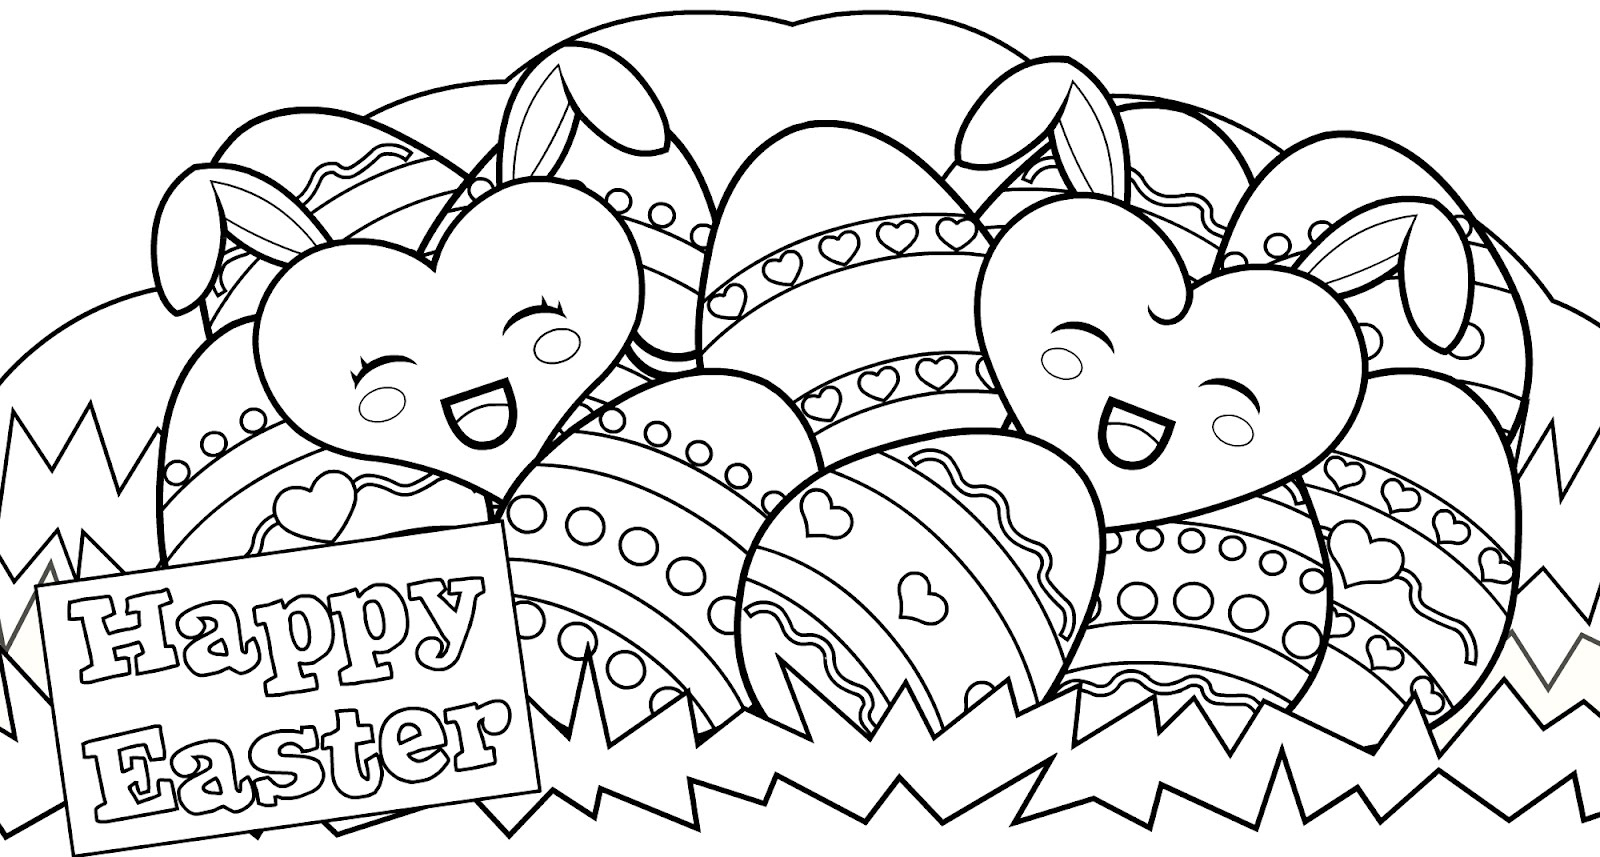 Coloring Pages for Kids for Easter Download 19o - Free For Children